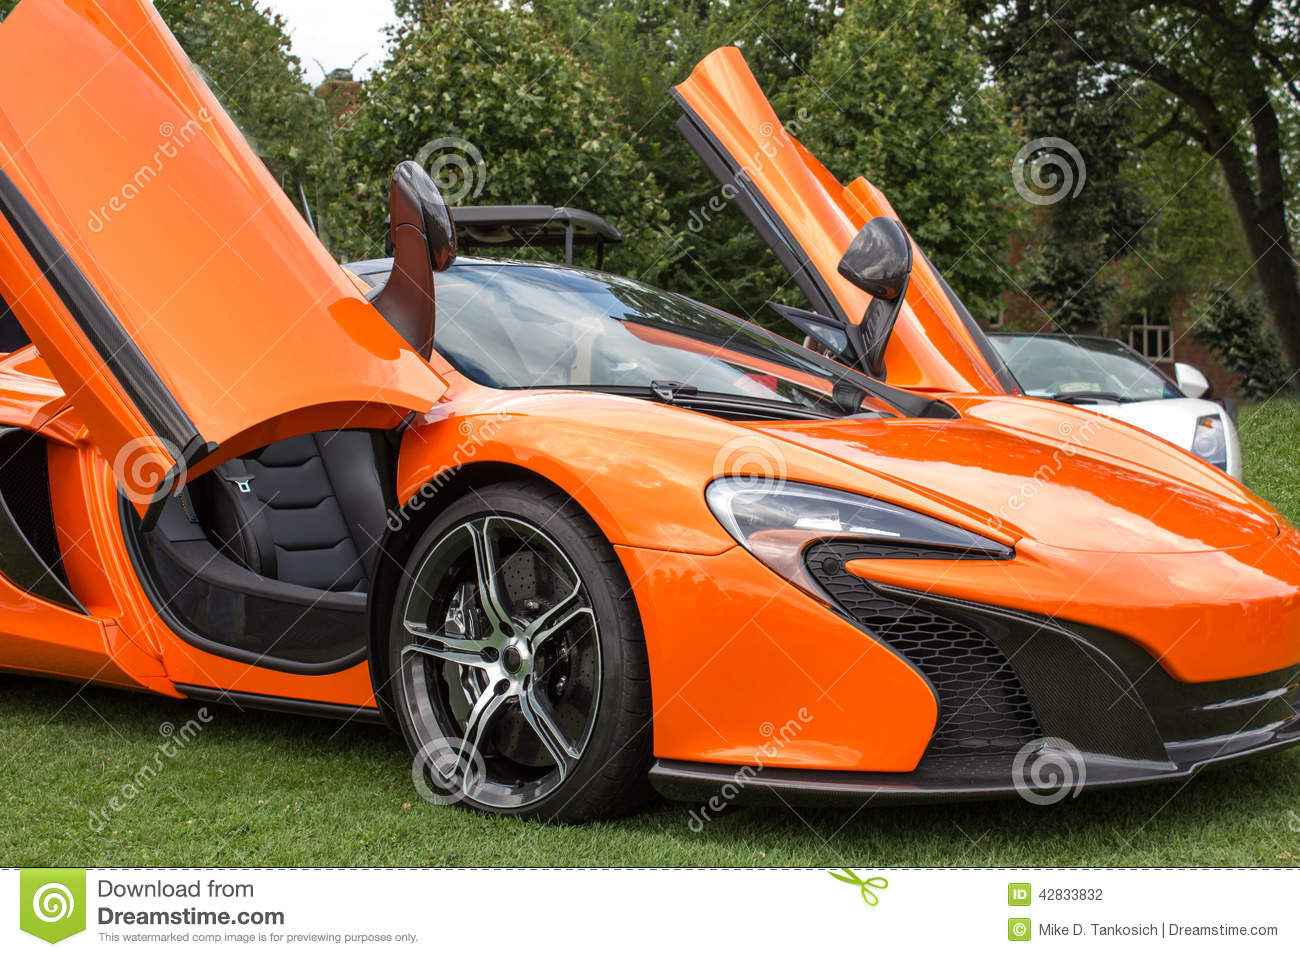 c t droit orange de voiture de sport photo stock image. Black Bedroom Furniture Sets. Home Design Ideas